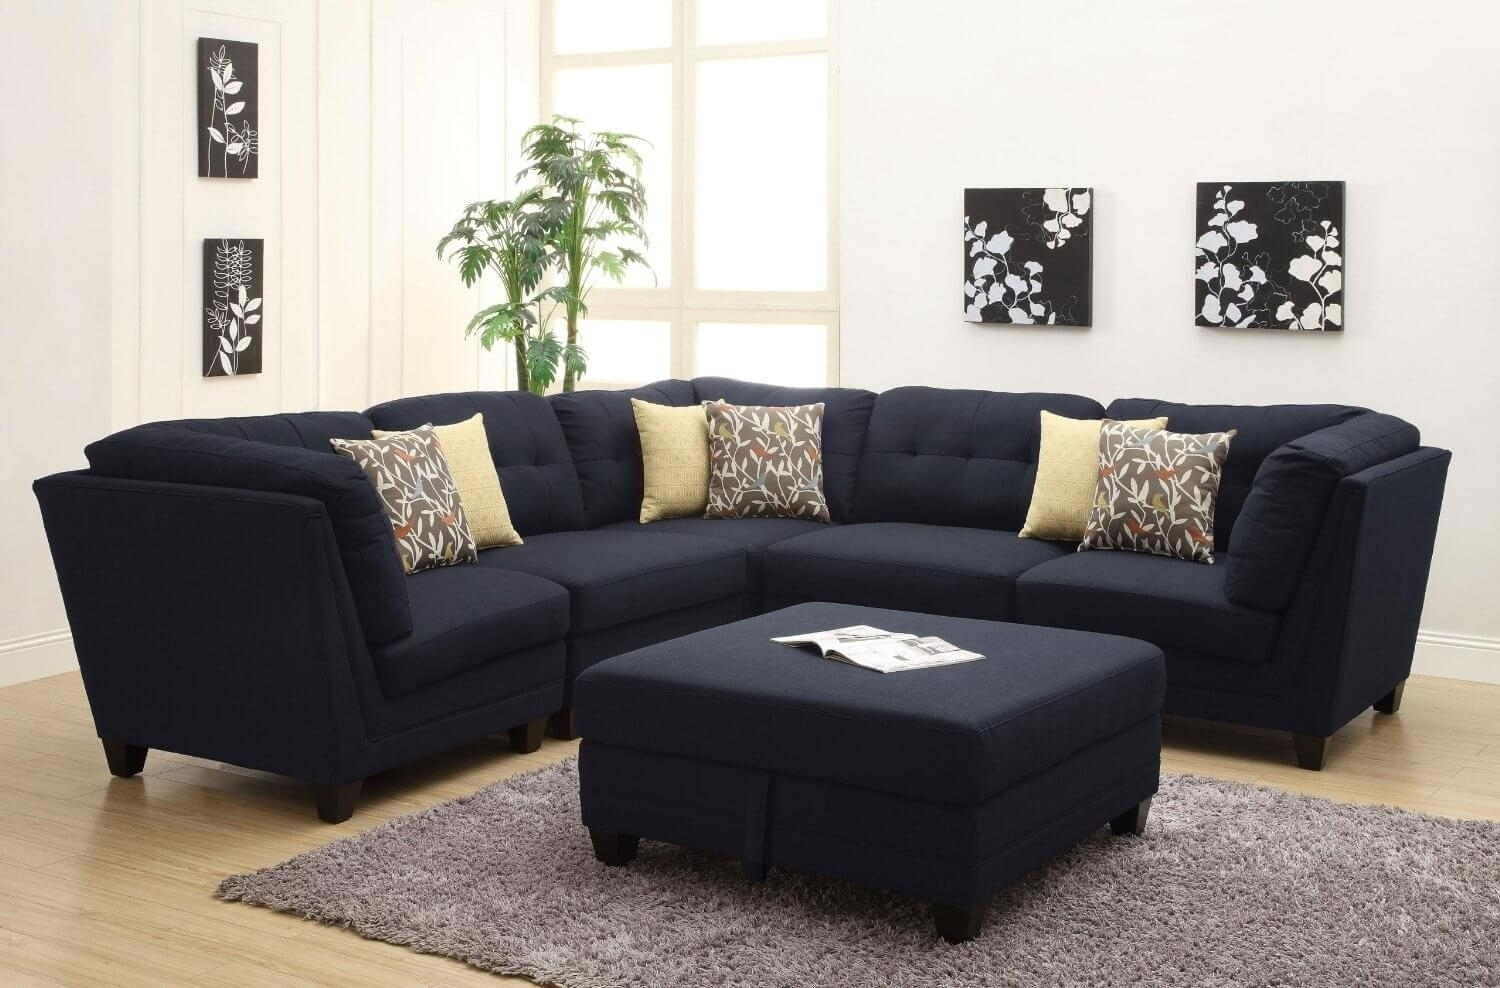 Sectional Sofas Under 2000 Dollars • Sectional Sofa regarding Sectional Sofas Under 1500 (Image 6 of 10)